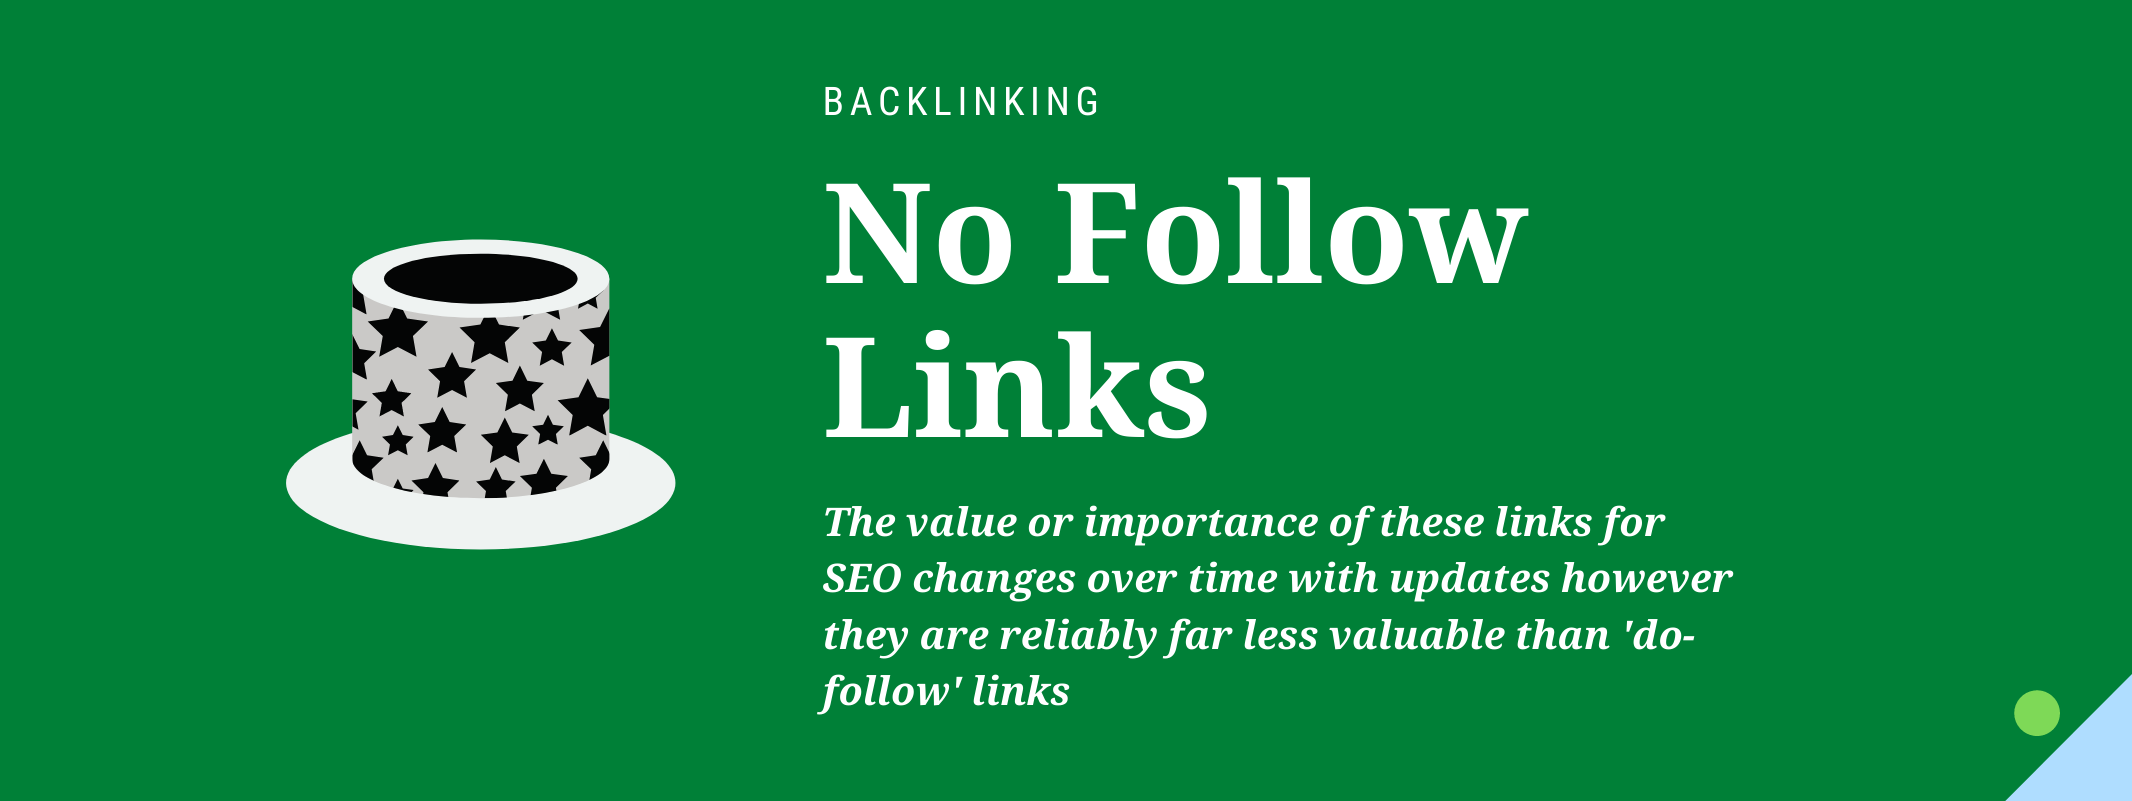 what is a dofollowlink